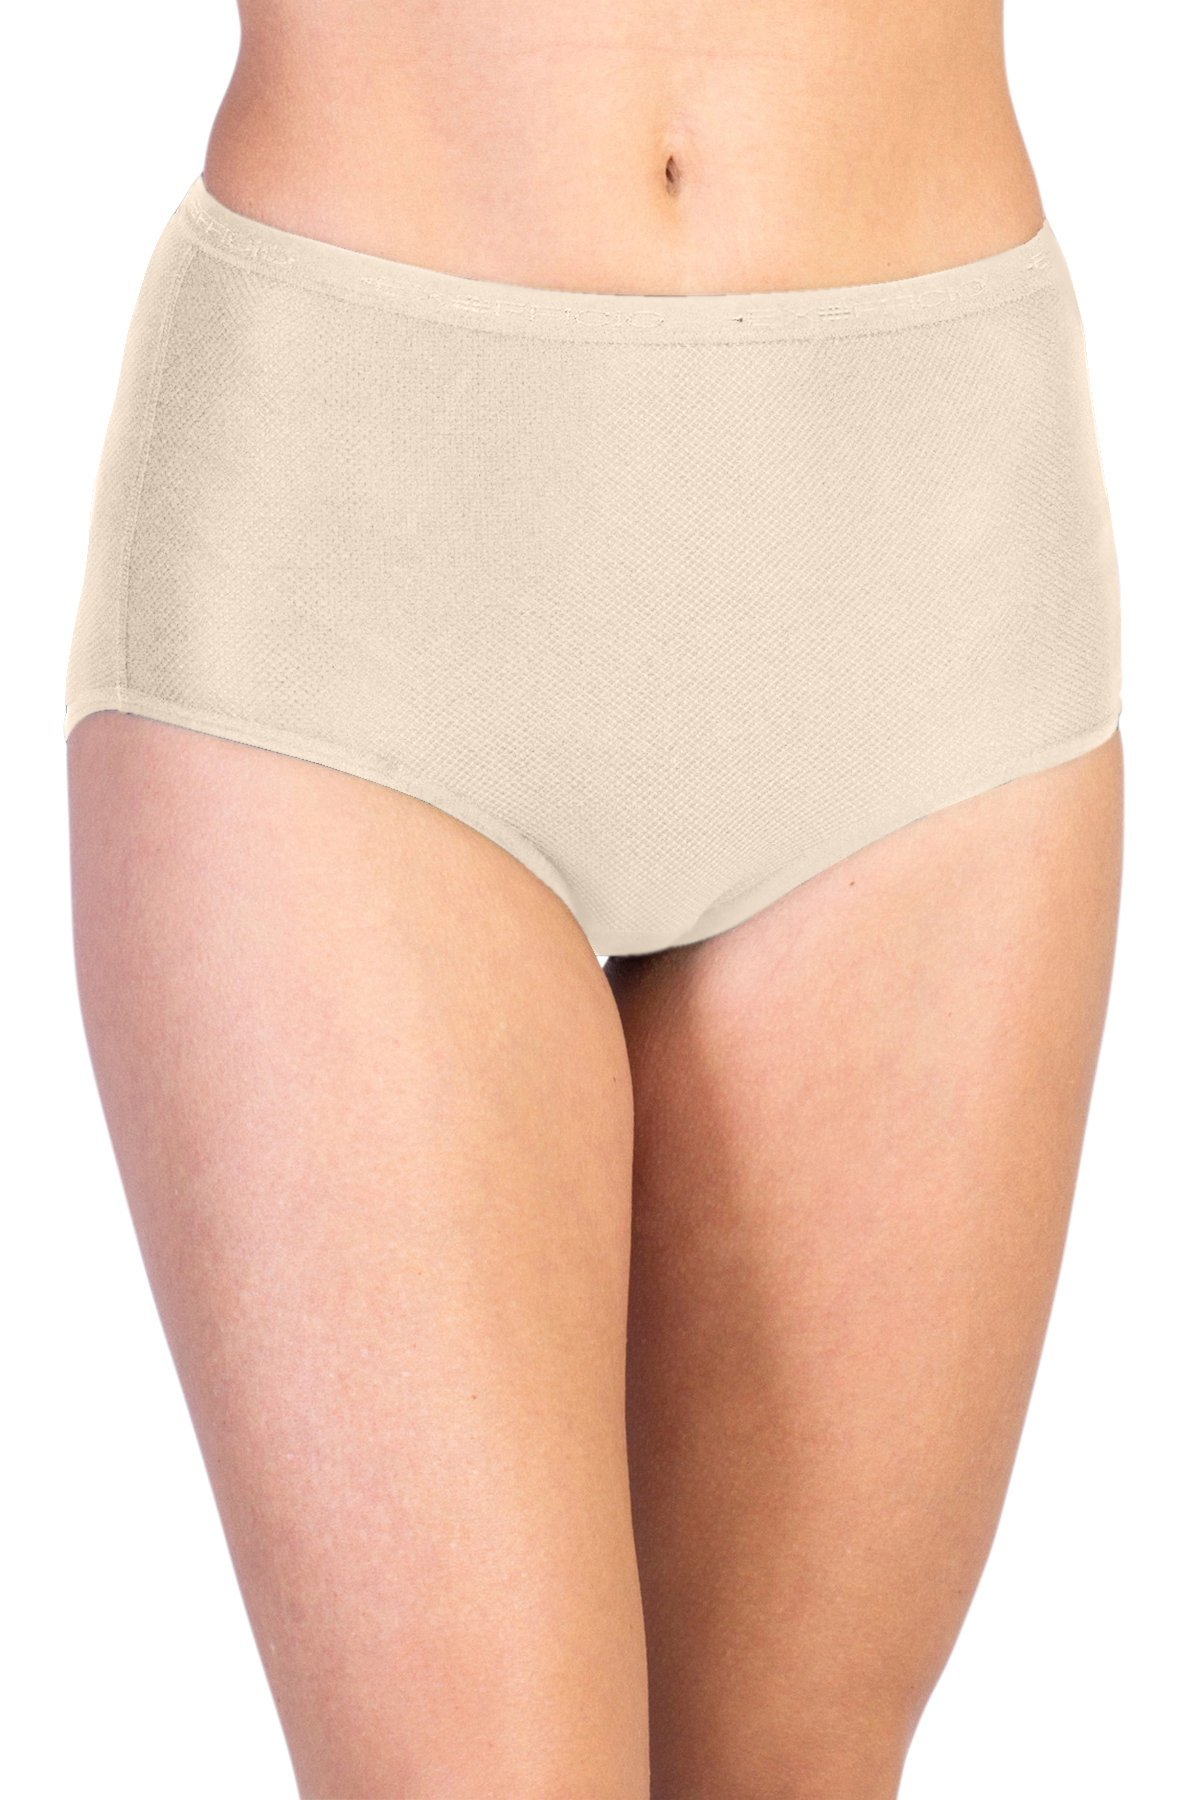 ExOfficio Women's Give-N-Go Full Cut Brief, Nude, X-Small